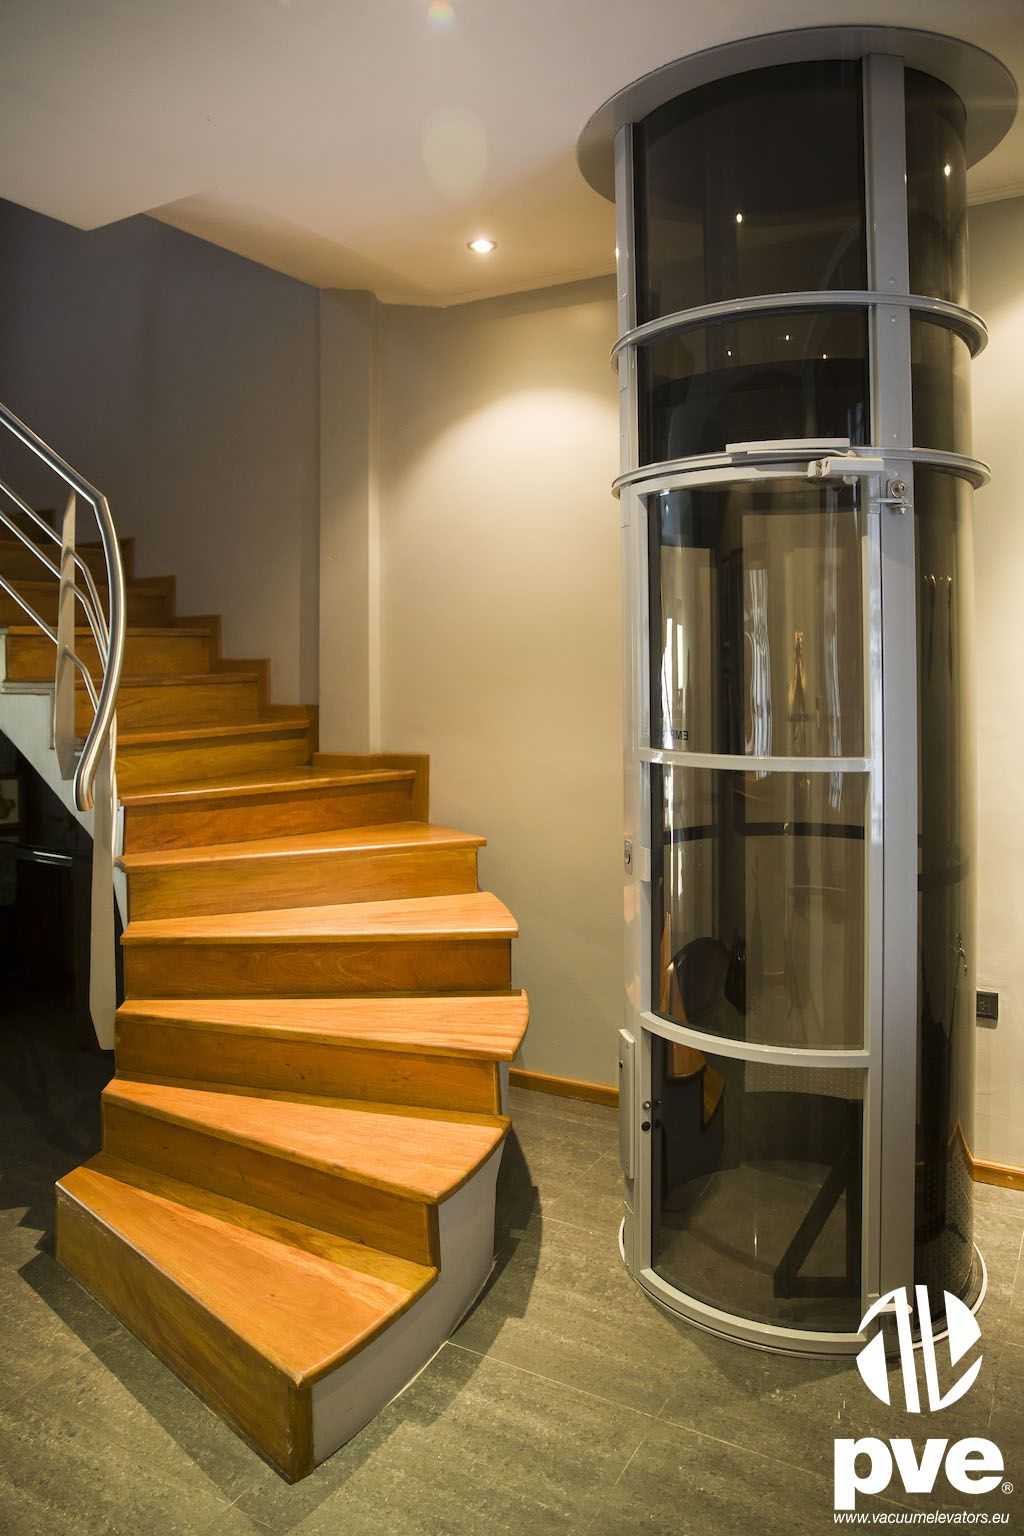 A Vacuum Lift Can Fit In With Any Room Or House Design. #vacuum #